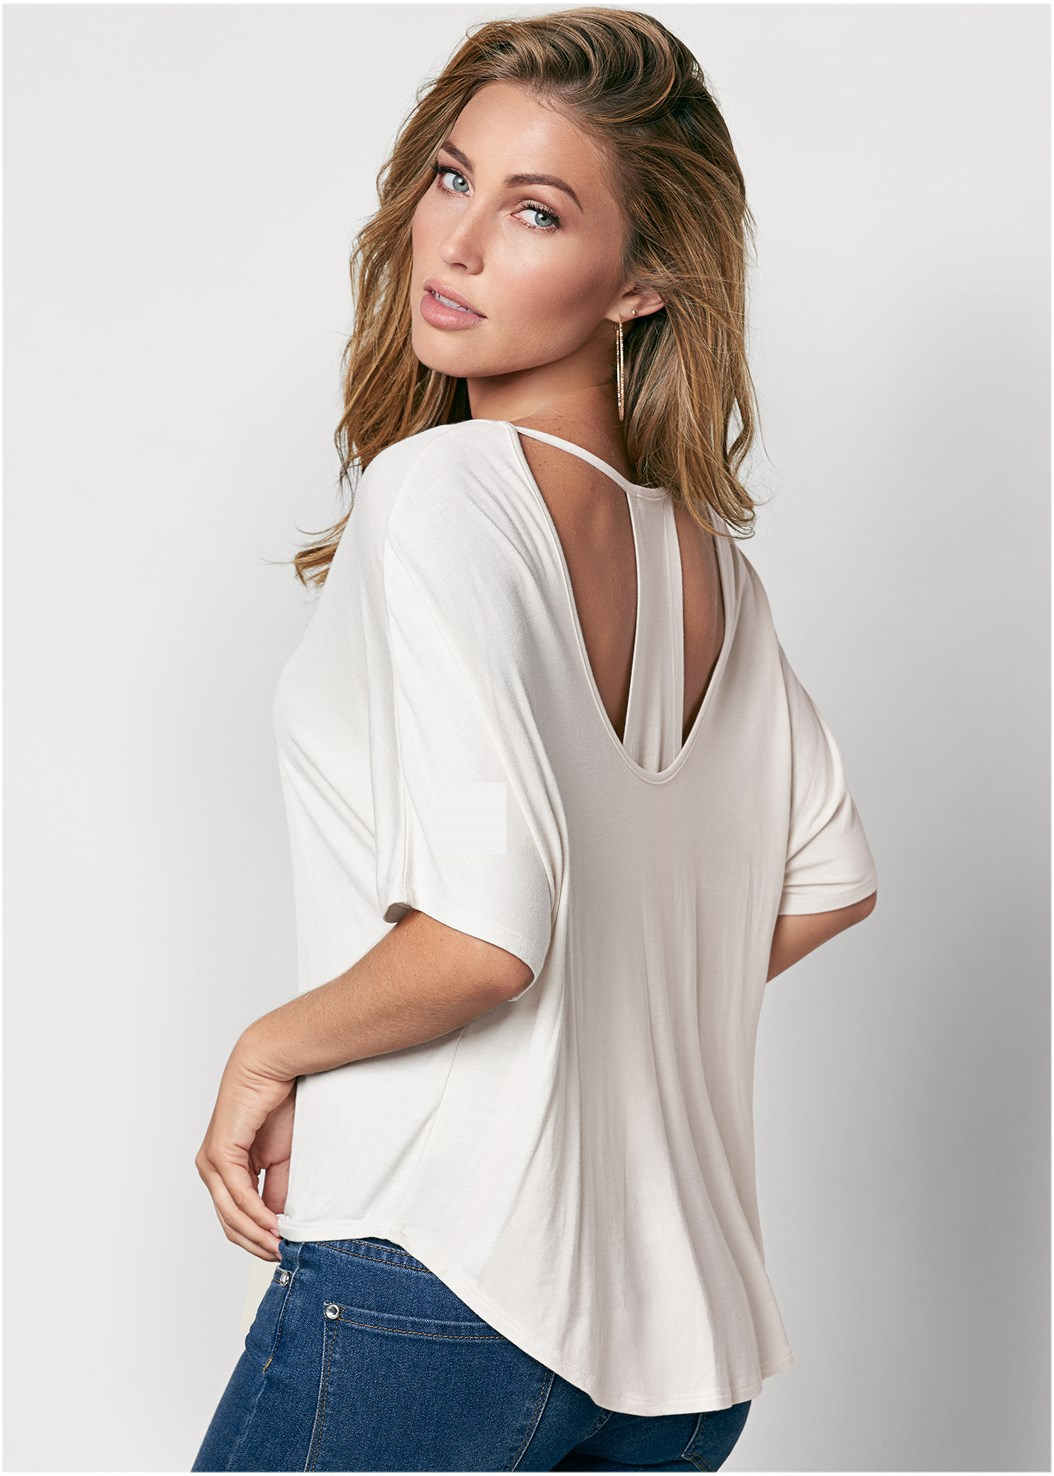 Racerback Basic Top,Mid Rise Color Skinny Jeans,Strap Solutions